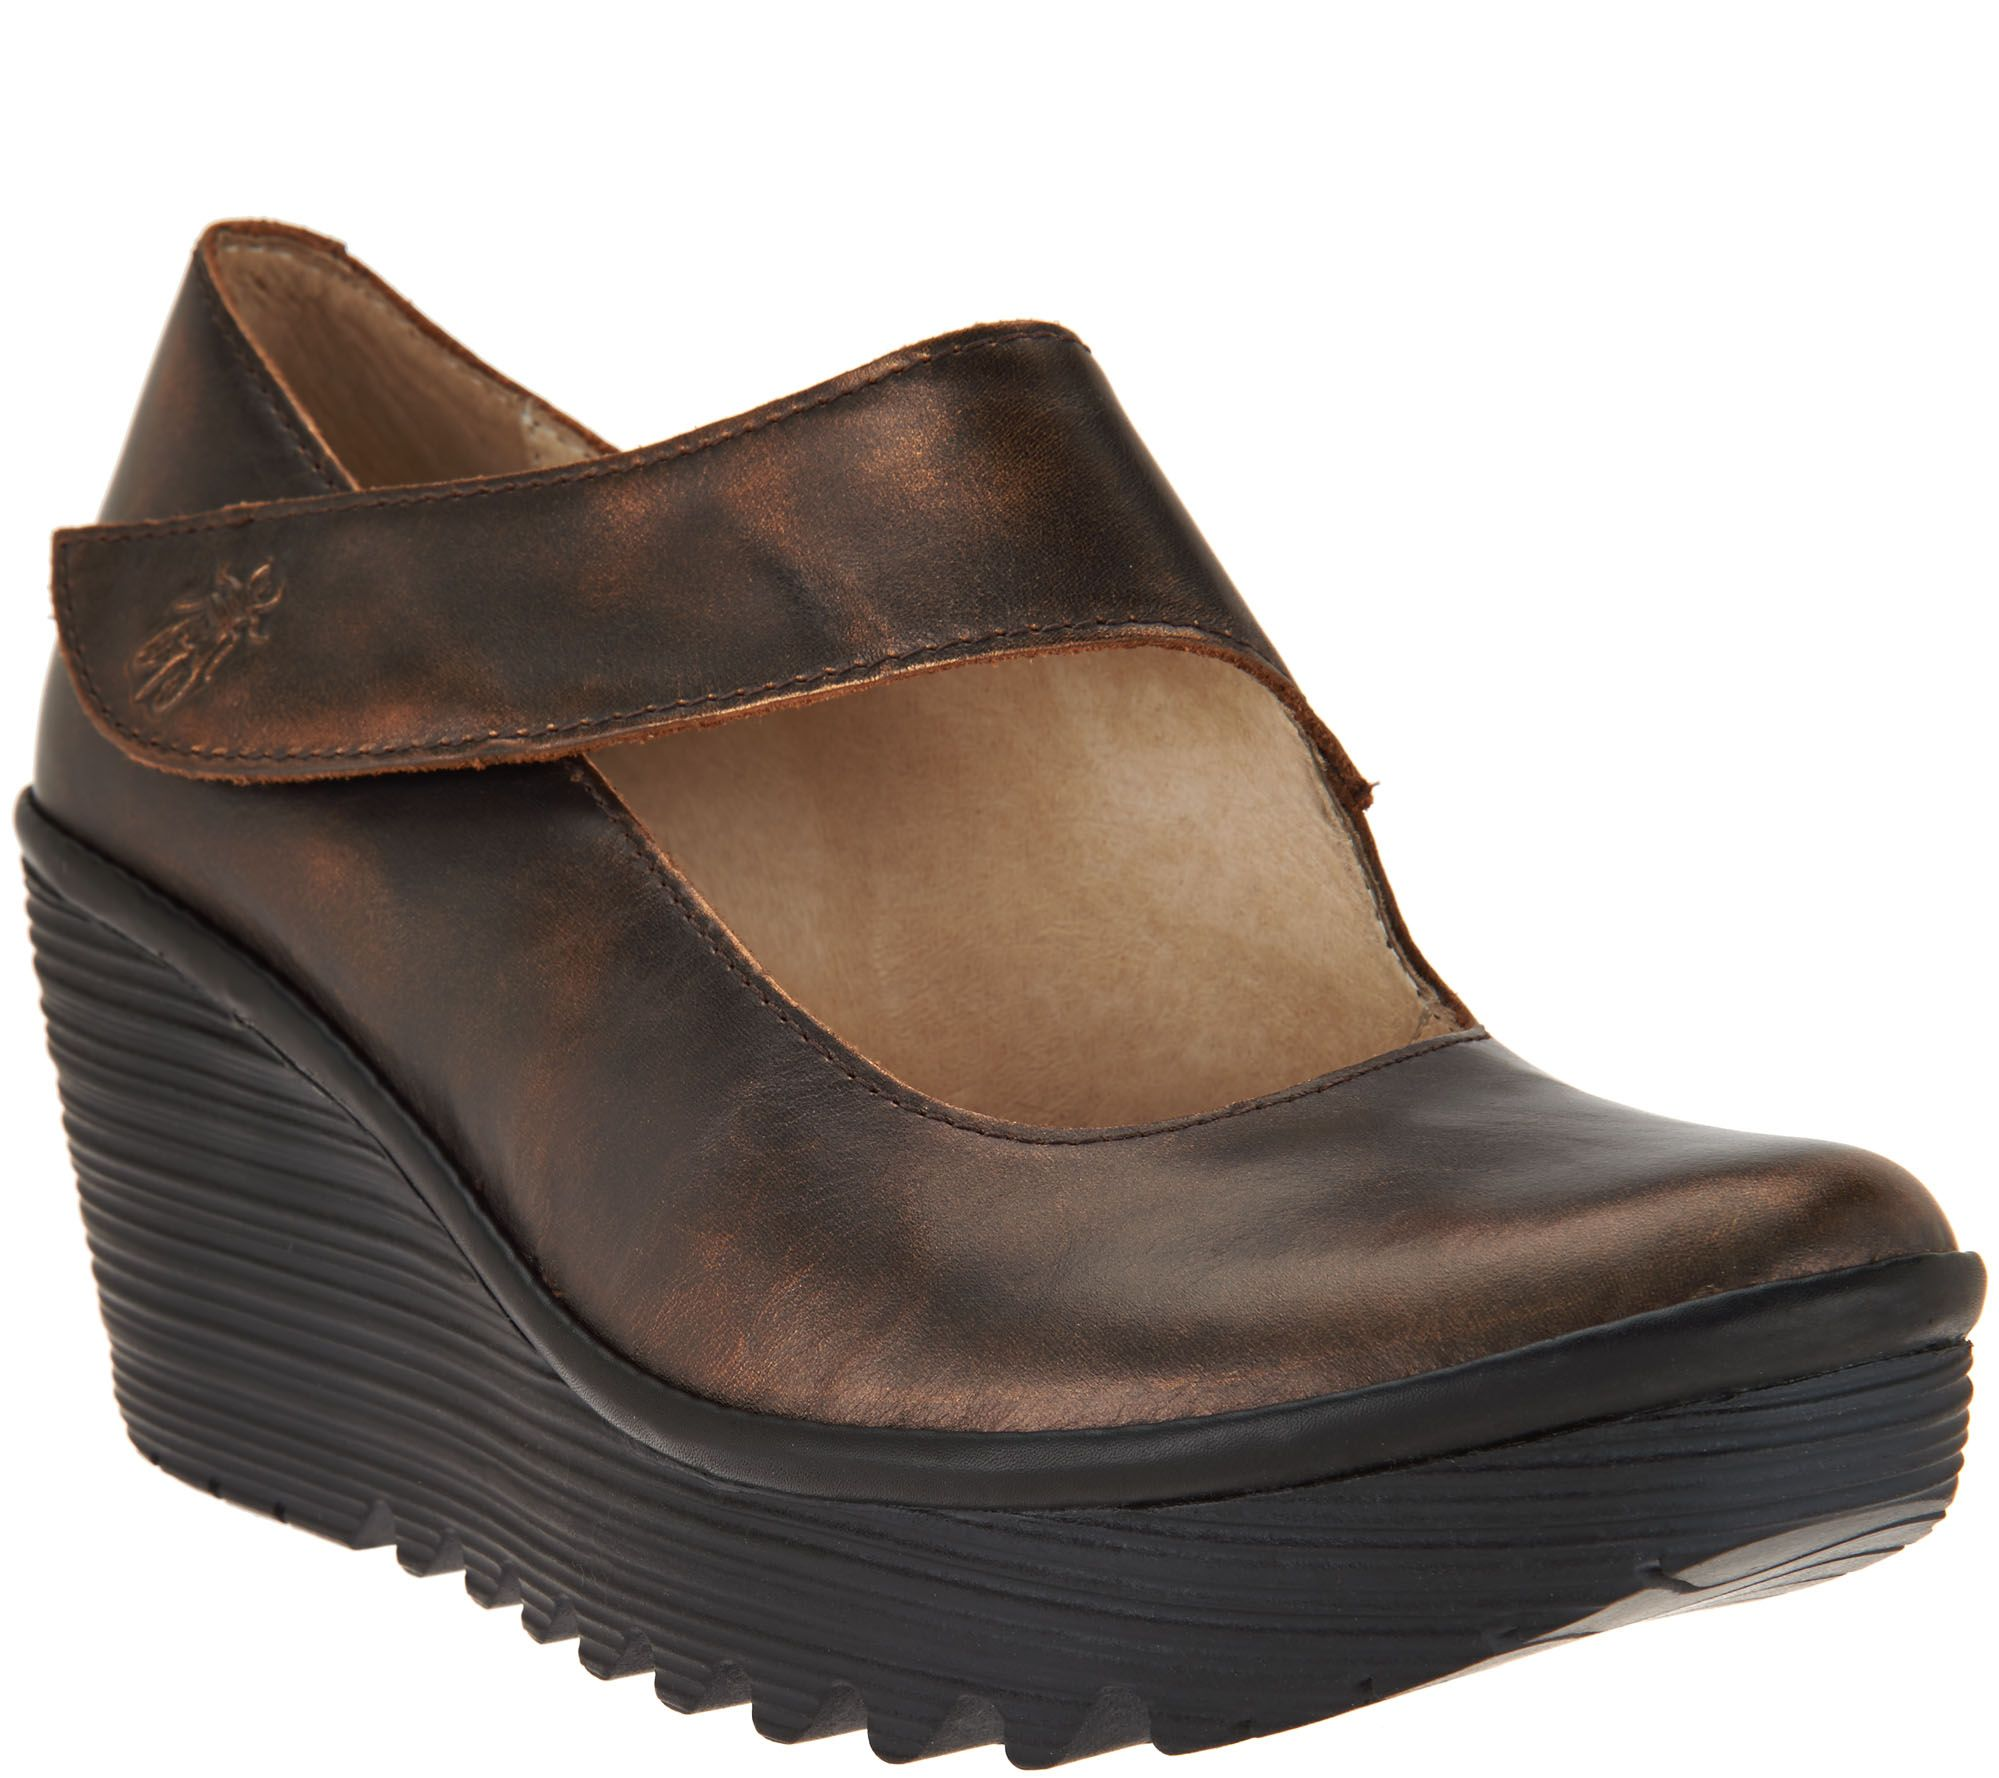 05377f5cf0e FLY London Leather Wedge Mary Janes - Yasi — QVC.com